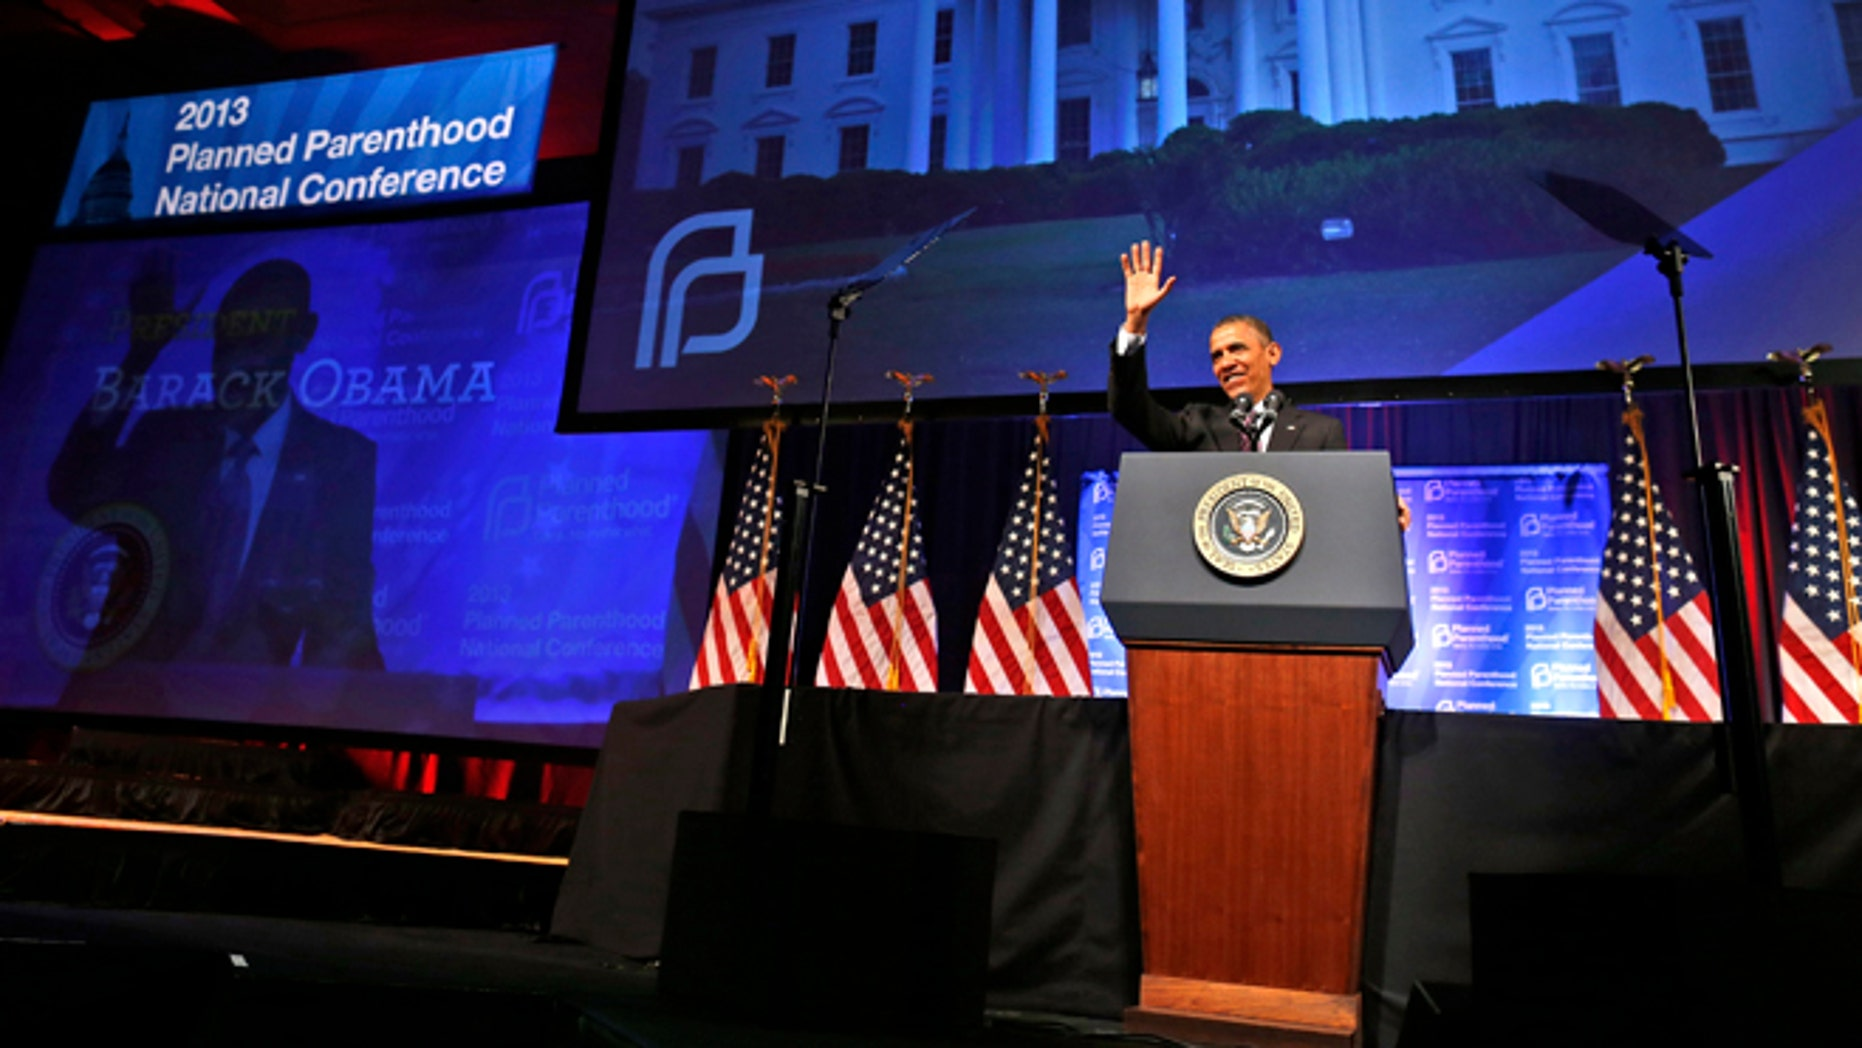 April 26, 2013: President Obama speaks at the 2013 Planned Parenthood National Conference in Washington.